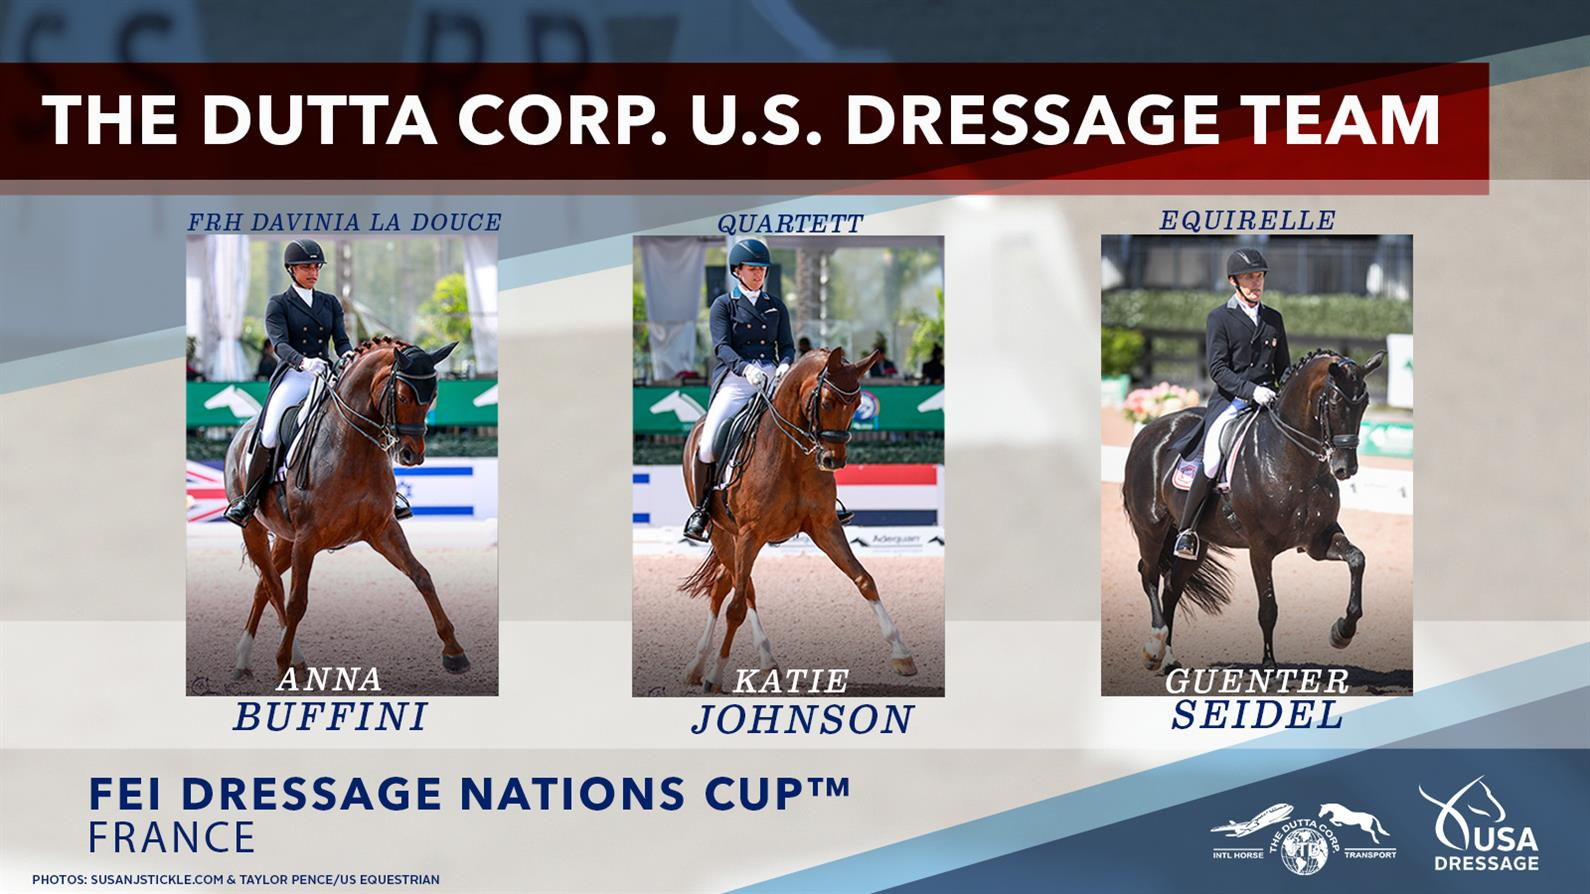 Horse and rider combinations for the 2021 FEI Nations Cup France U.S. Dressage Team